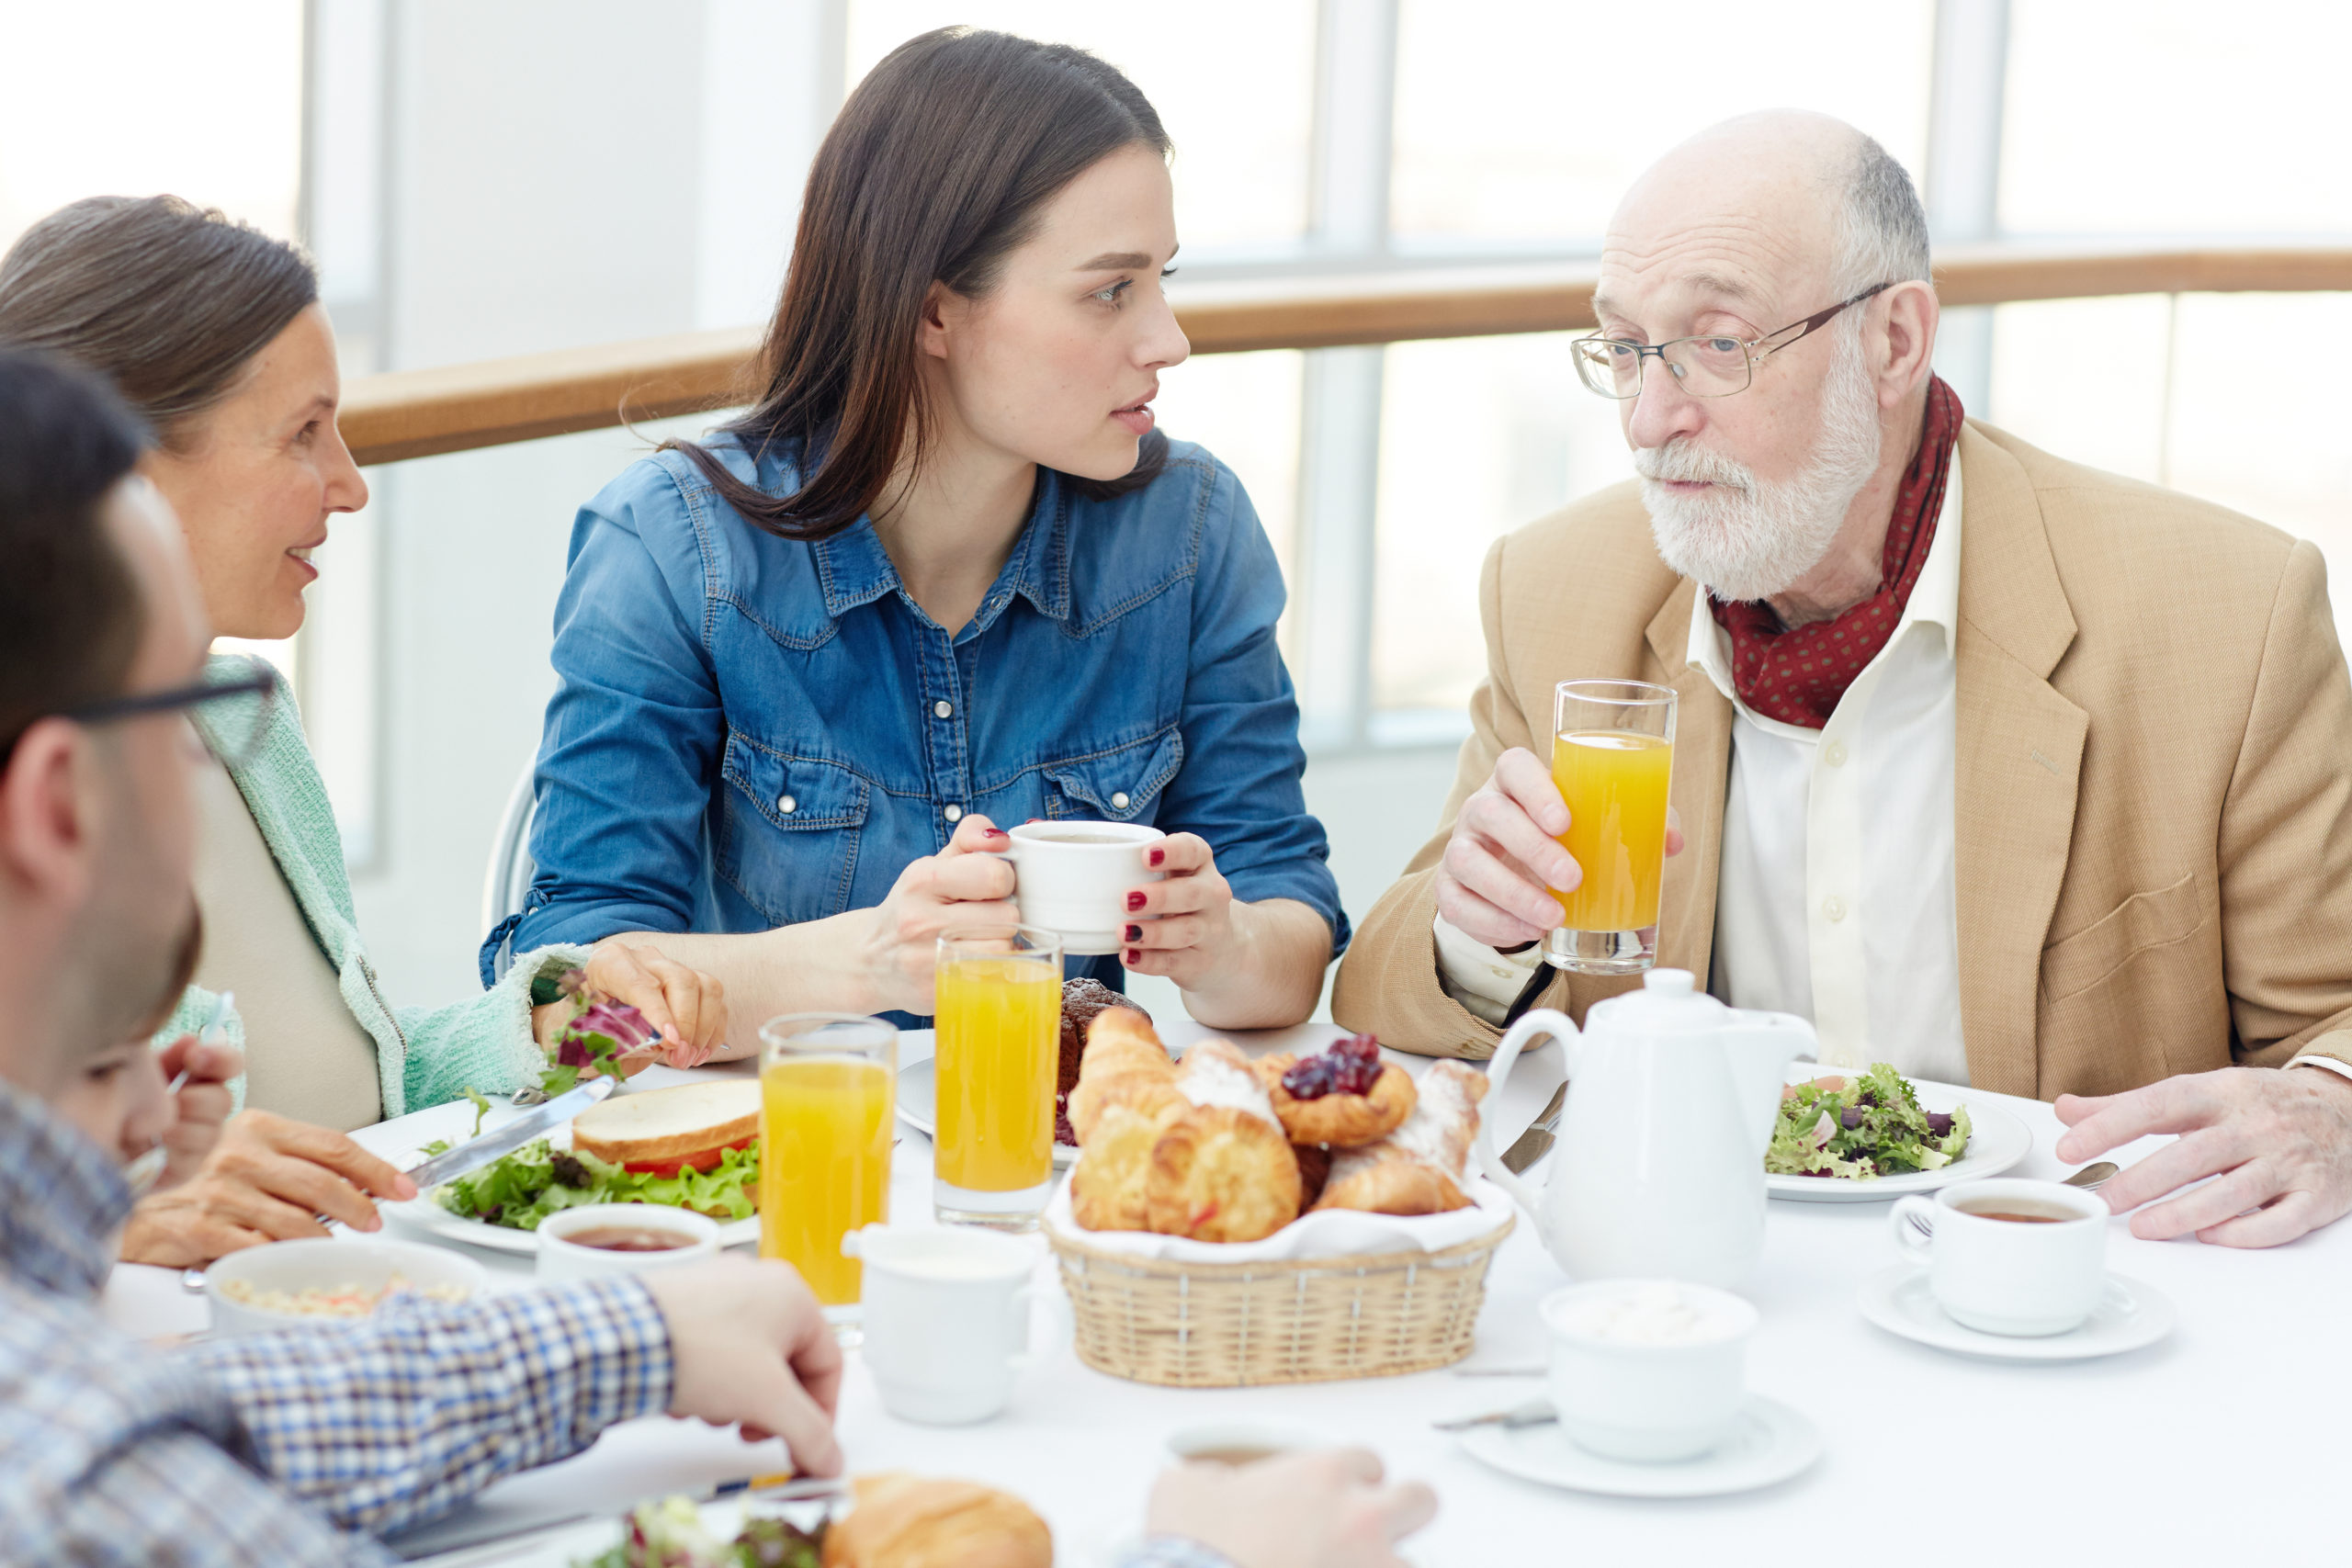 This Thanksgiving Talk about the Care You Would Want